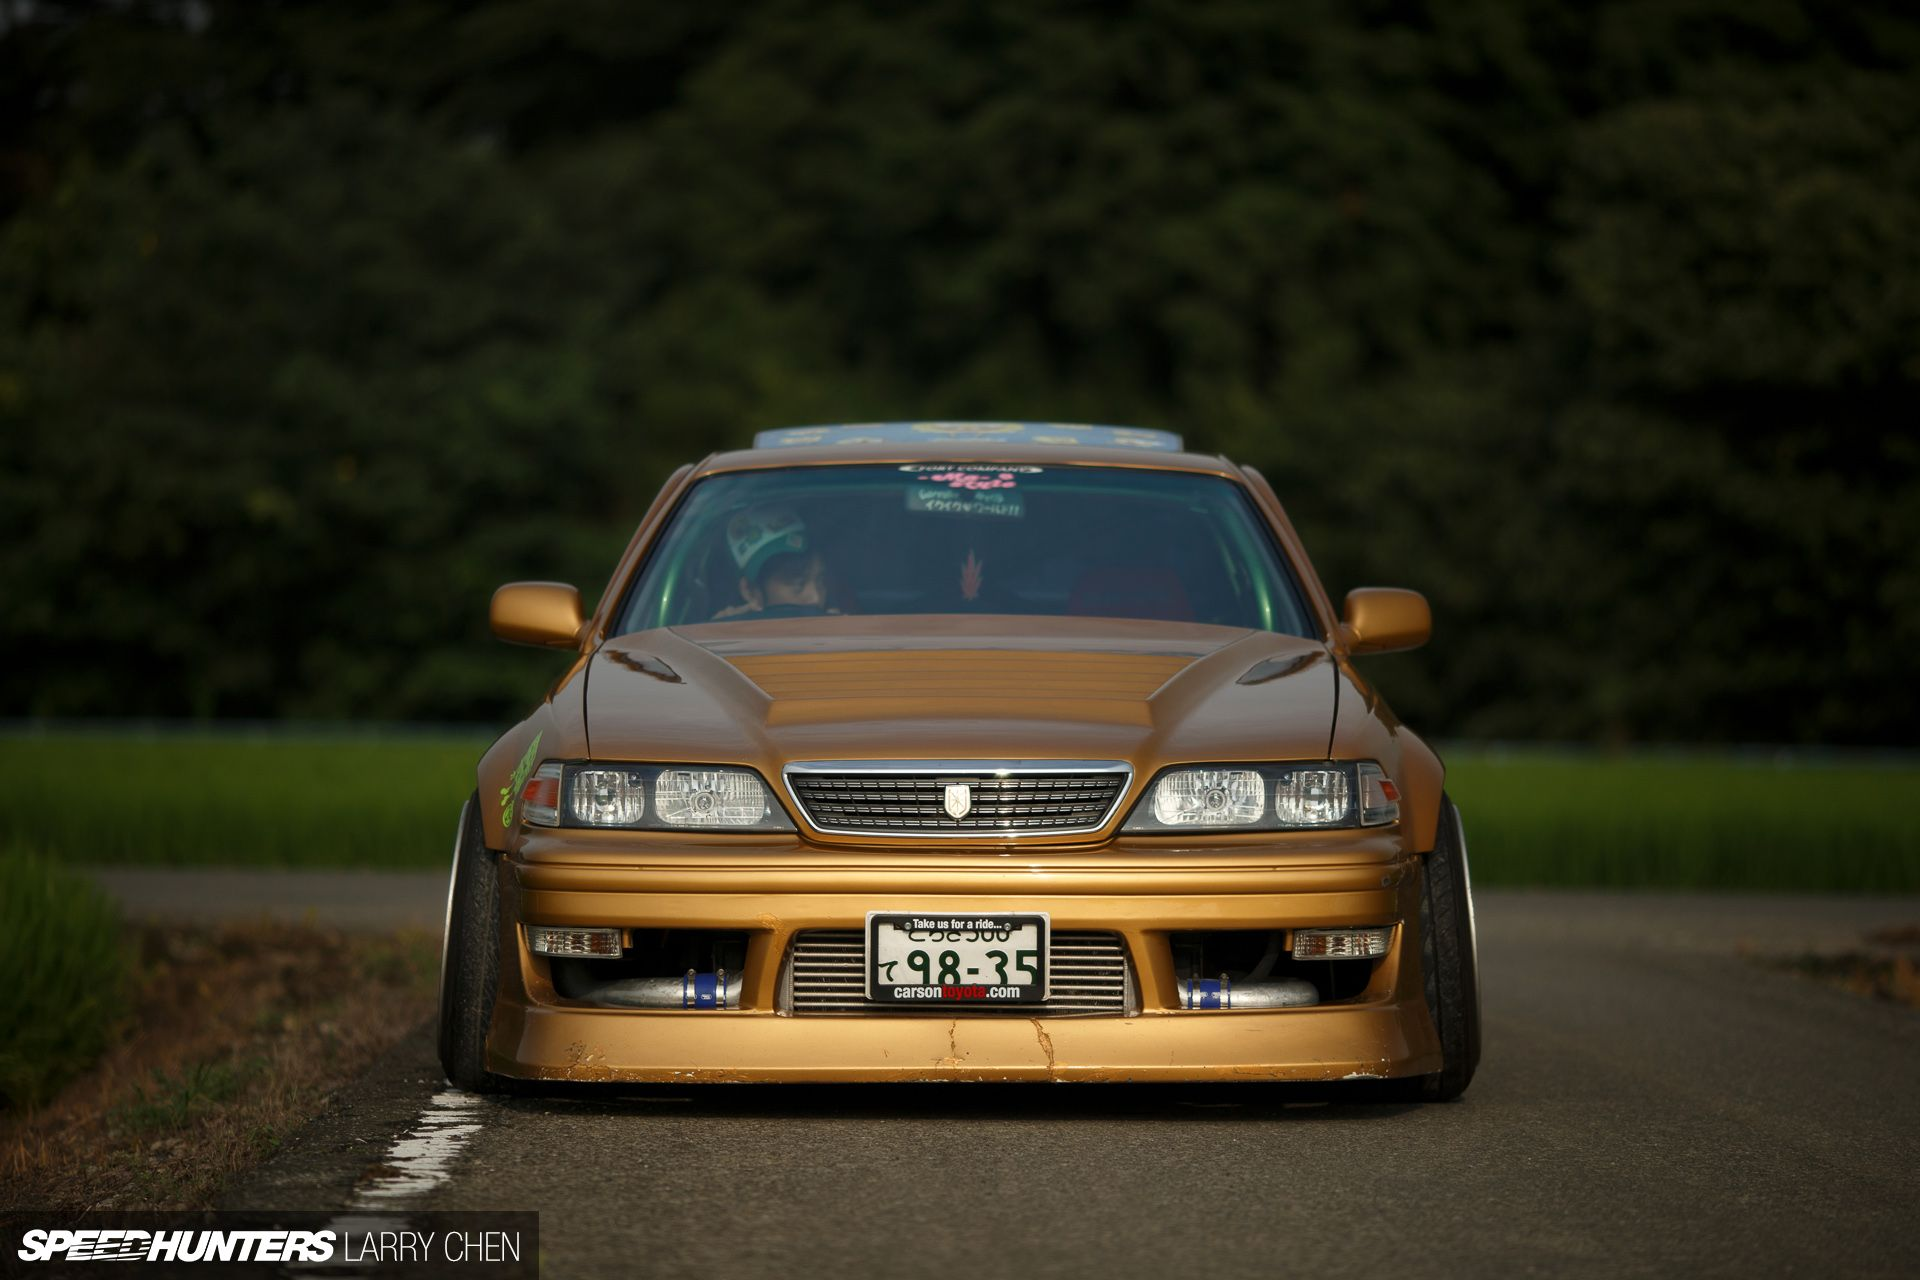 Exceptionnel TOYOTA CHASER JZX100. Attrayant #JZX1000